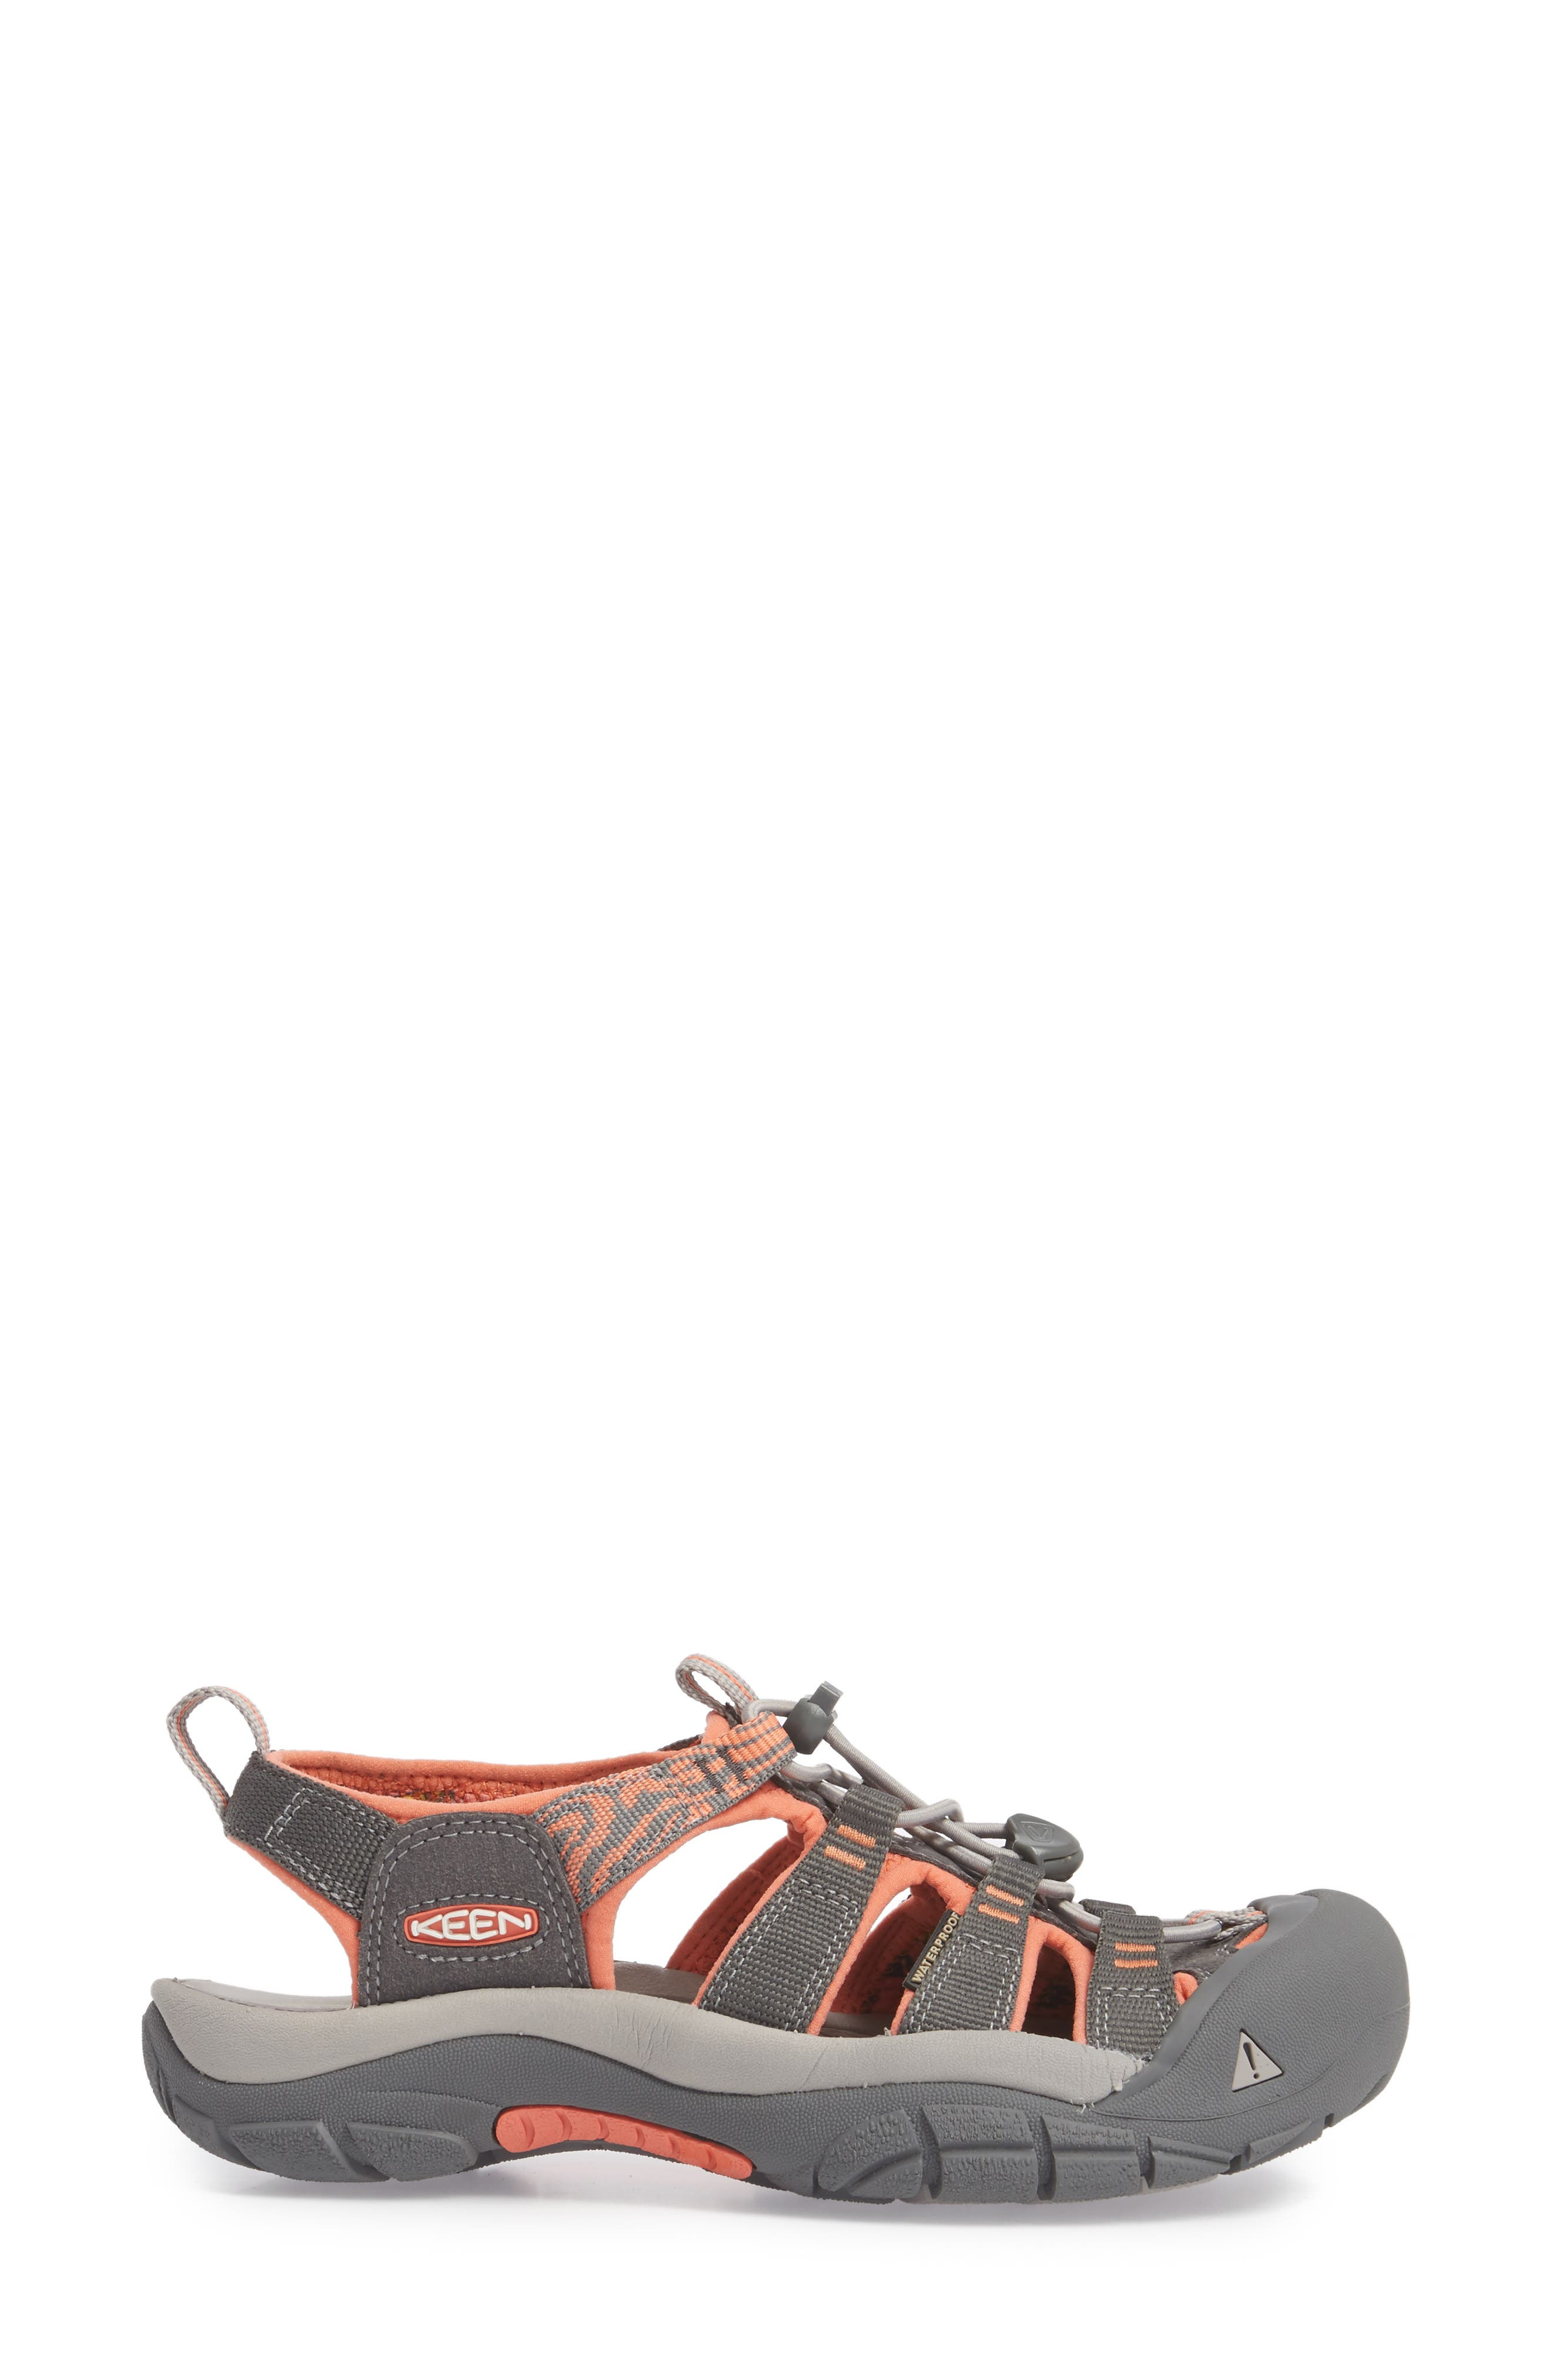 Newport Hydro Sandal,                             Alternate thumbnail 3, color,                             MAGNET/ CORAL